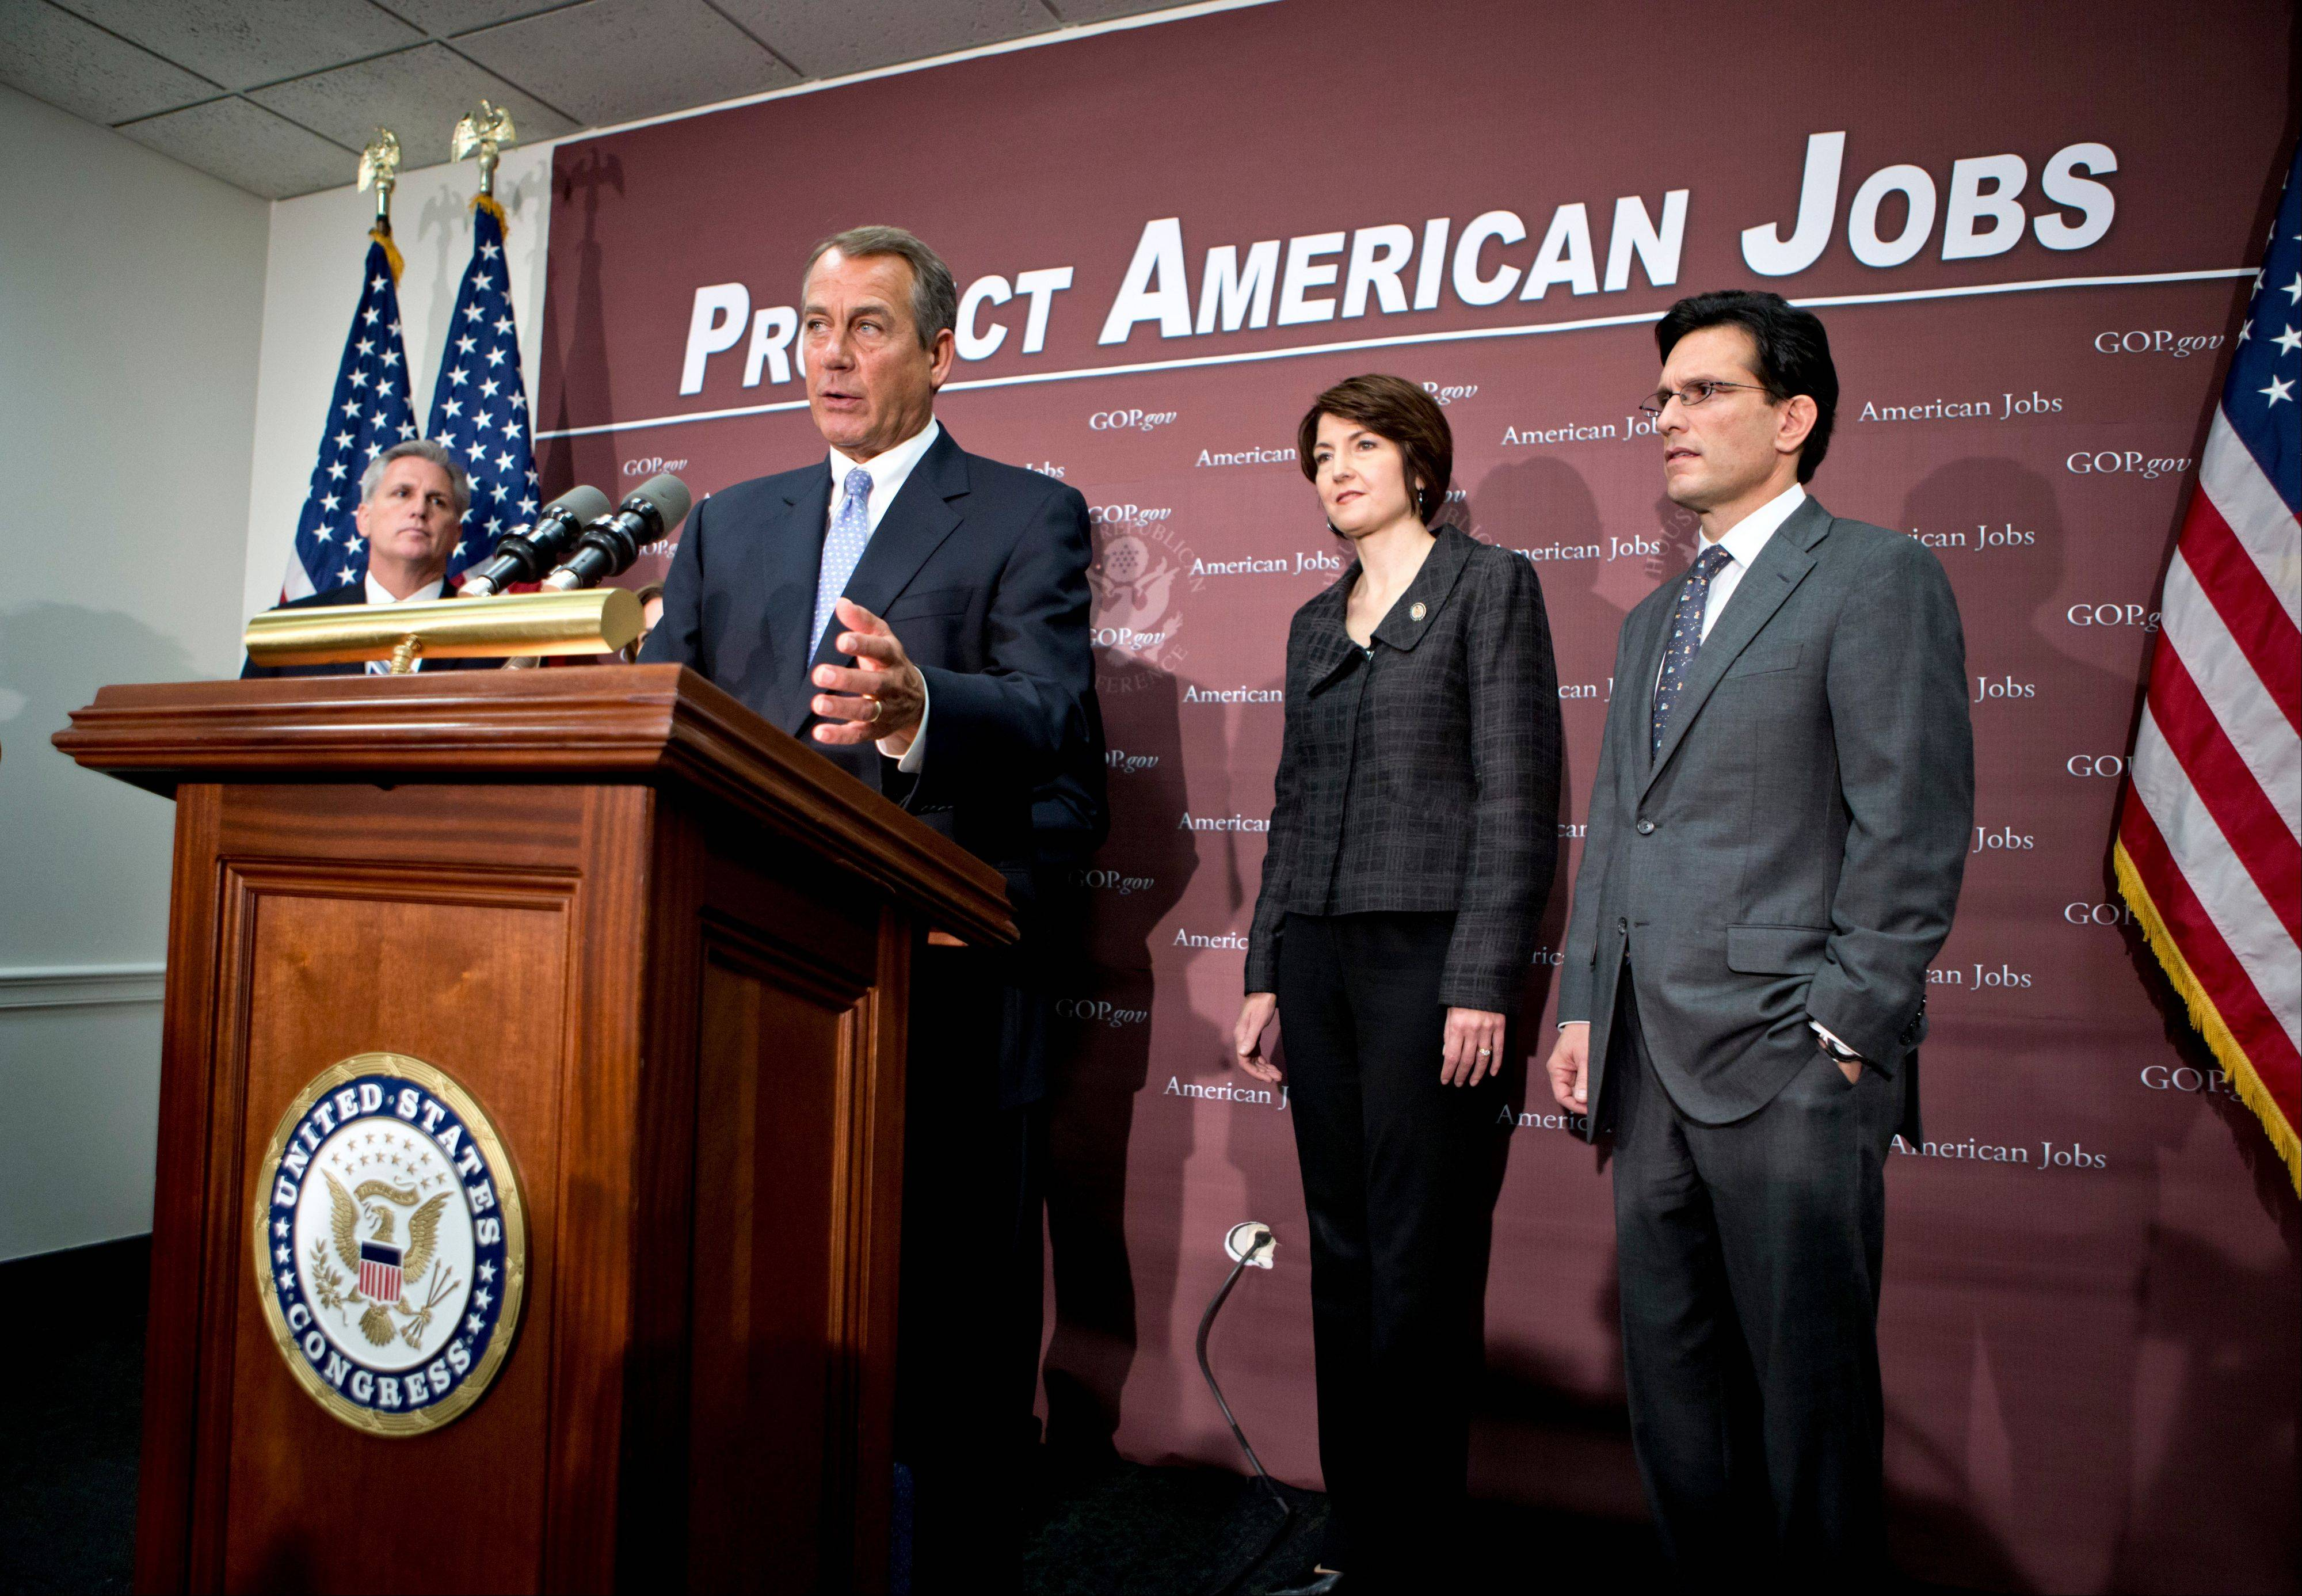 House Speaker John Boehner of Ohio, accompanied by the House GOP leadership, speaks to reporters on Capitol Hill Wednesday, following a closed-door GOP strategy session. From left are, House Majority Whip Kevin McCarthy of California, Boehner, R